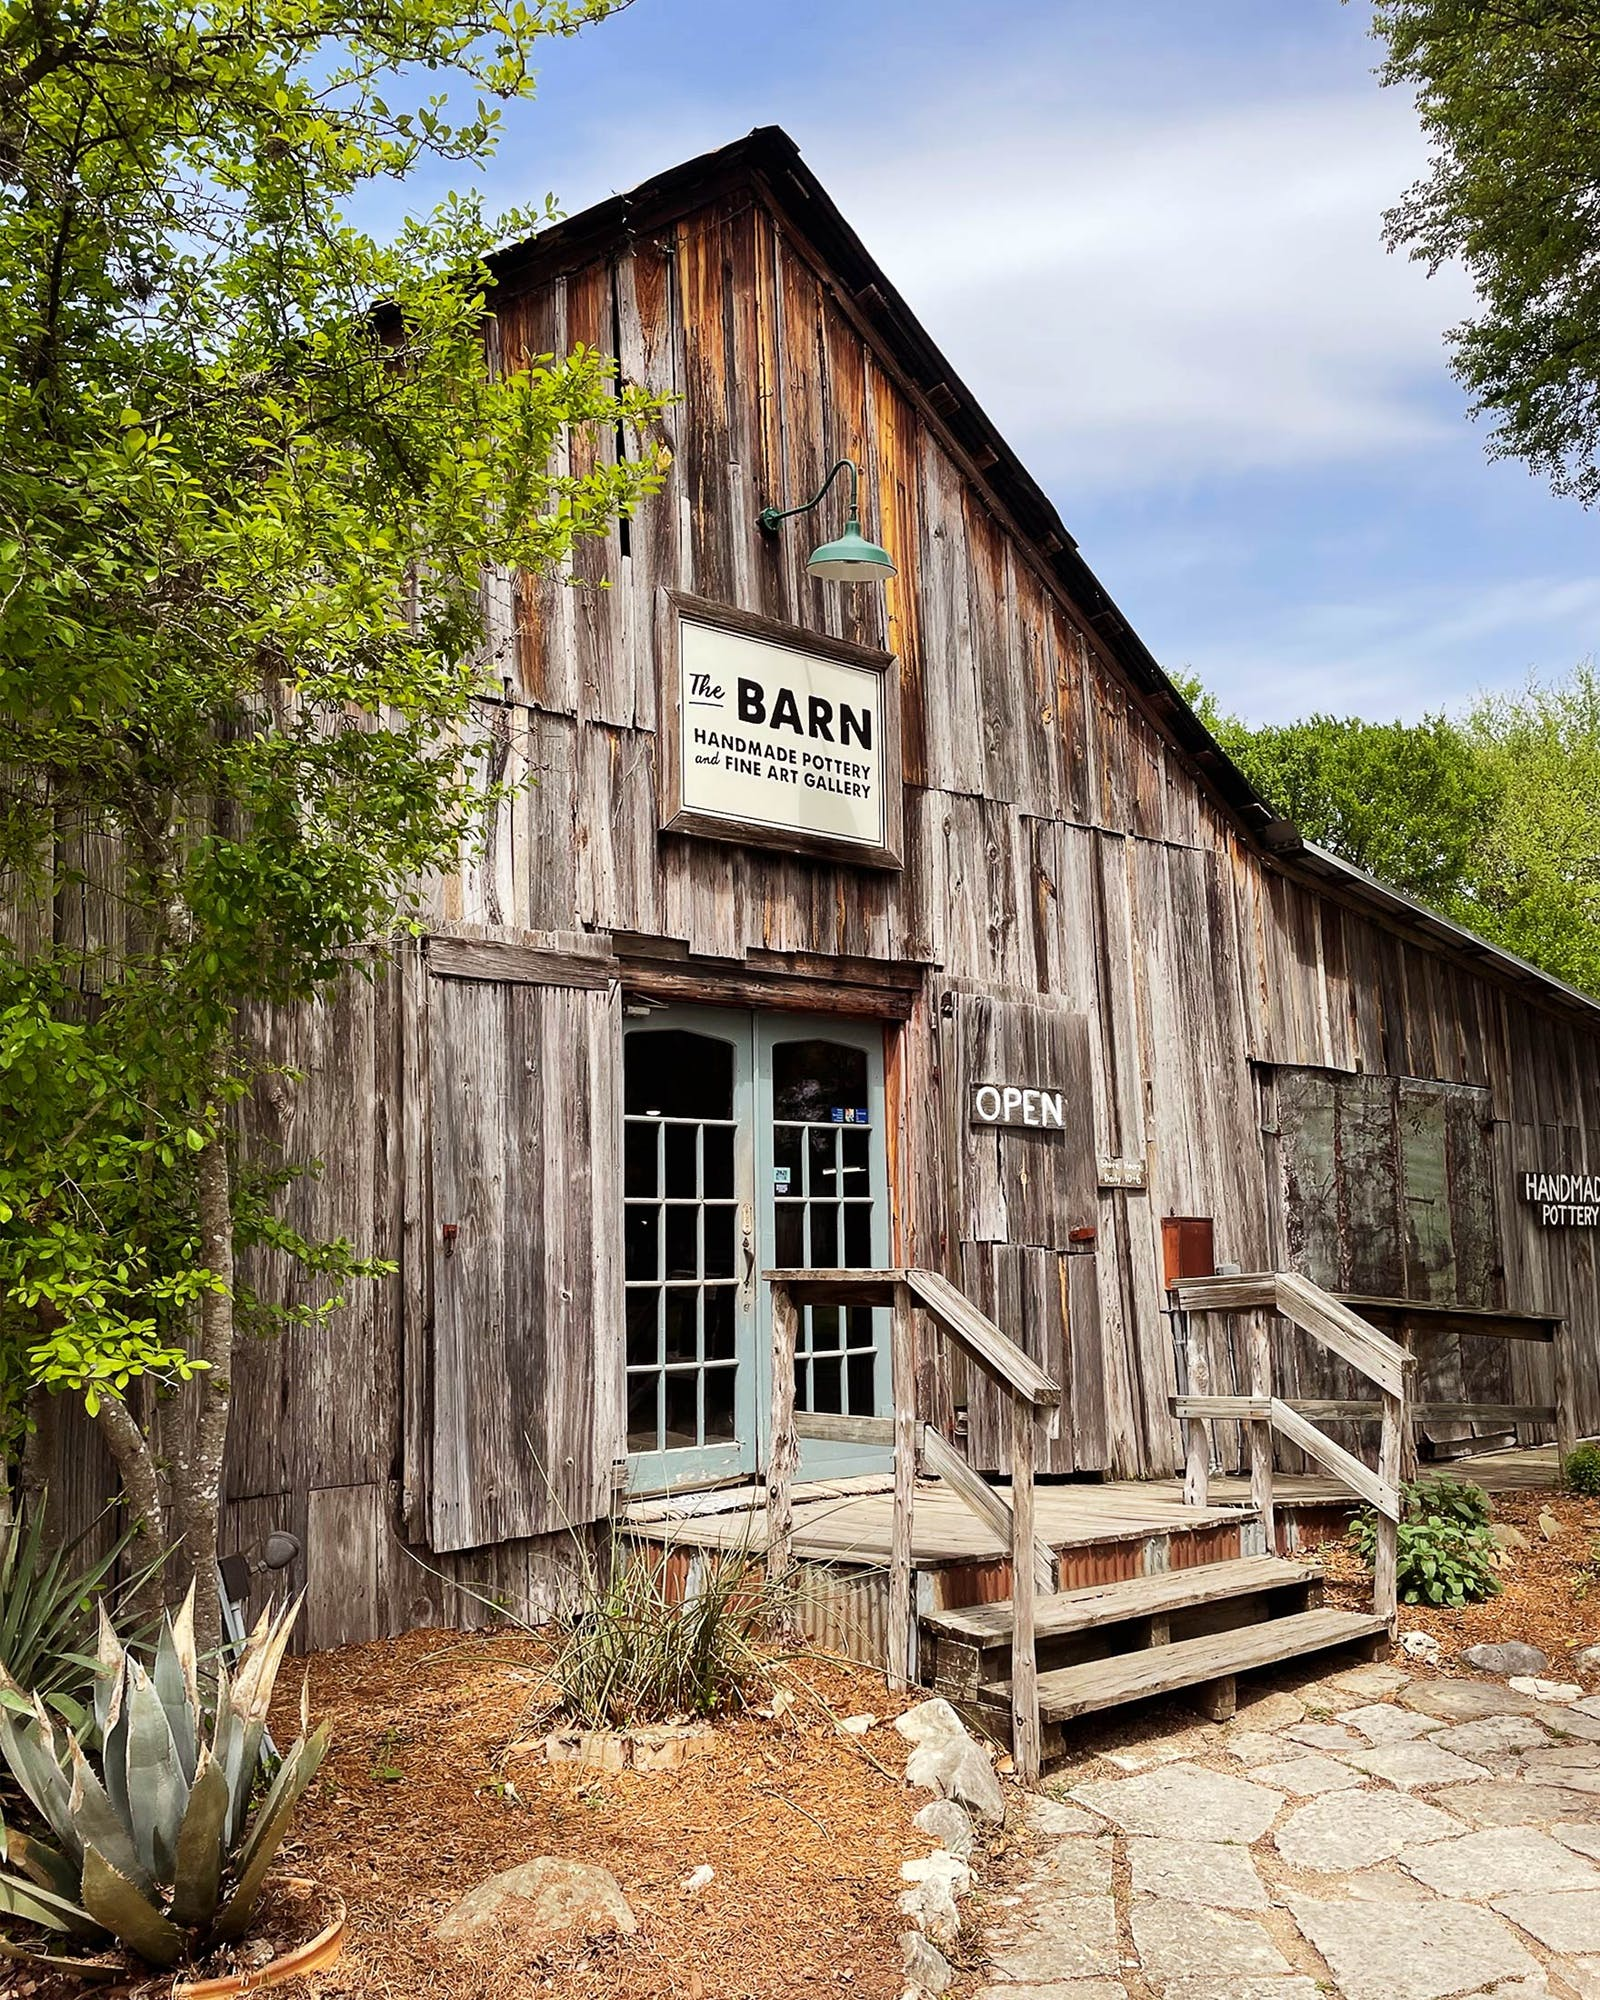 At The Barn Handmade Pottery and Fine Art Gallery in Gruene, you're likely to see an artist or two in action.